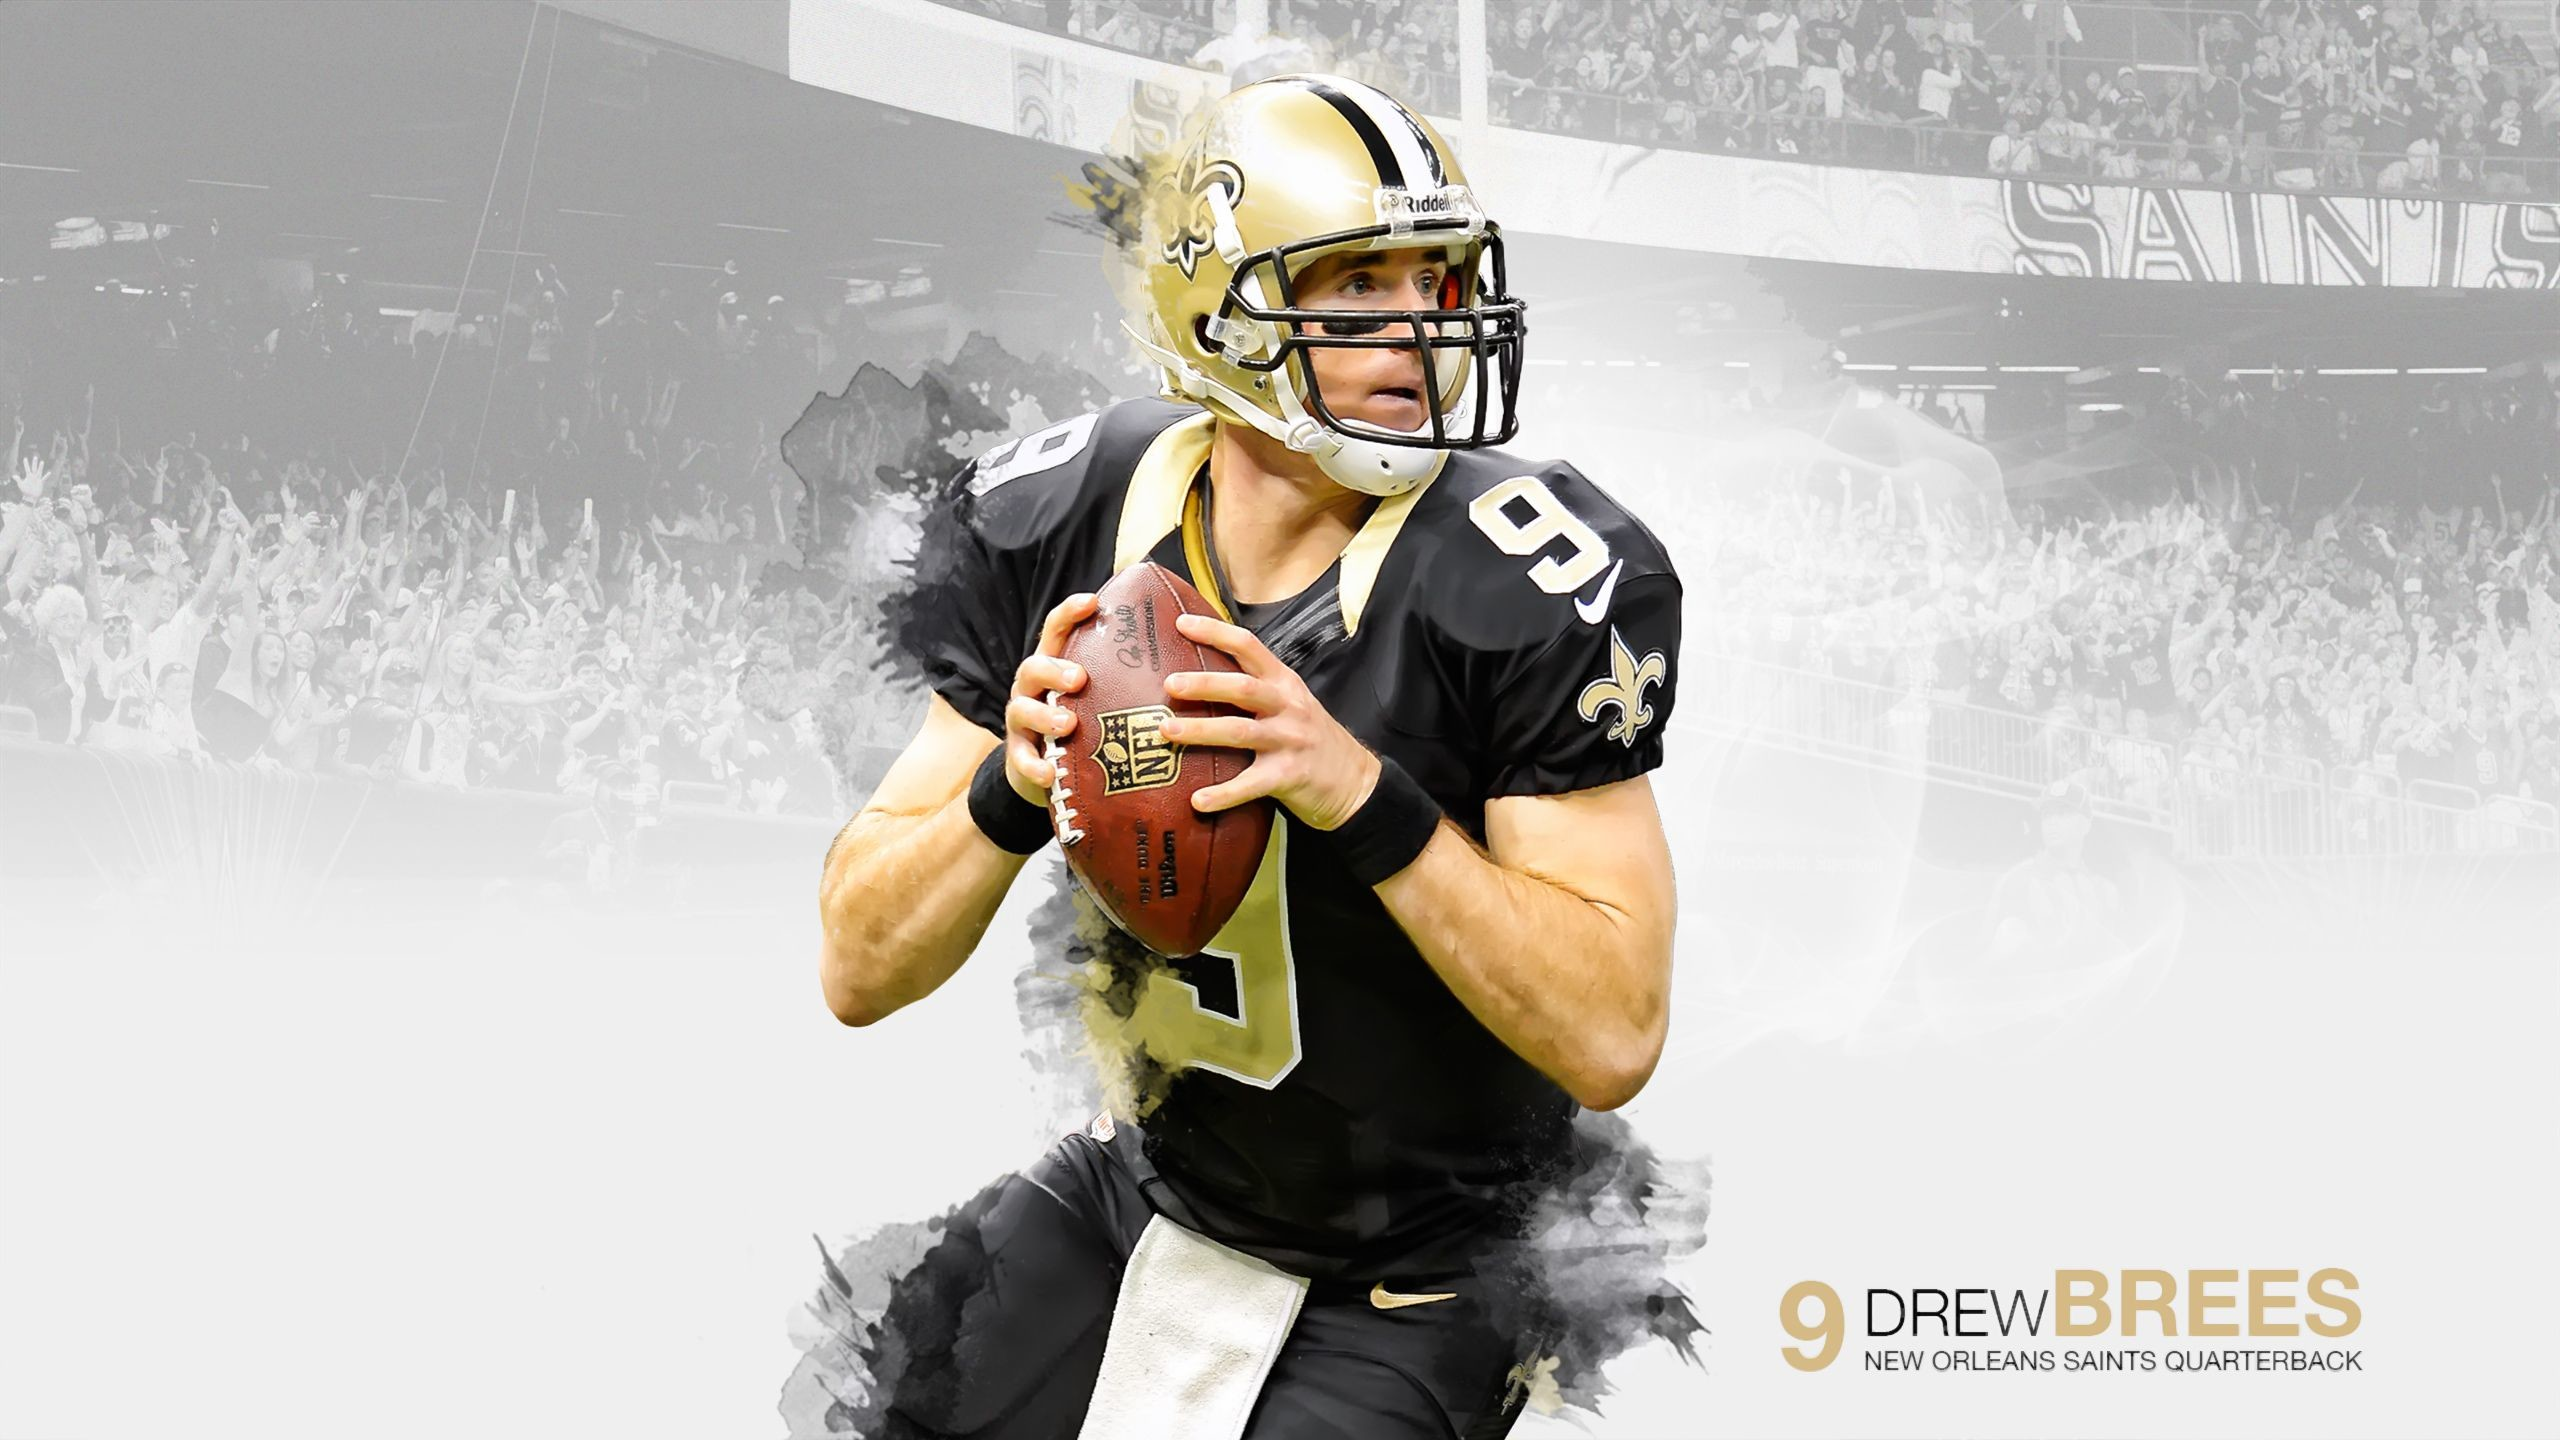 Drew Brees Wallpaper HD 71 images 2560x1440